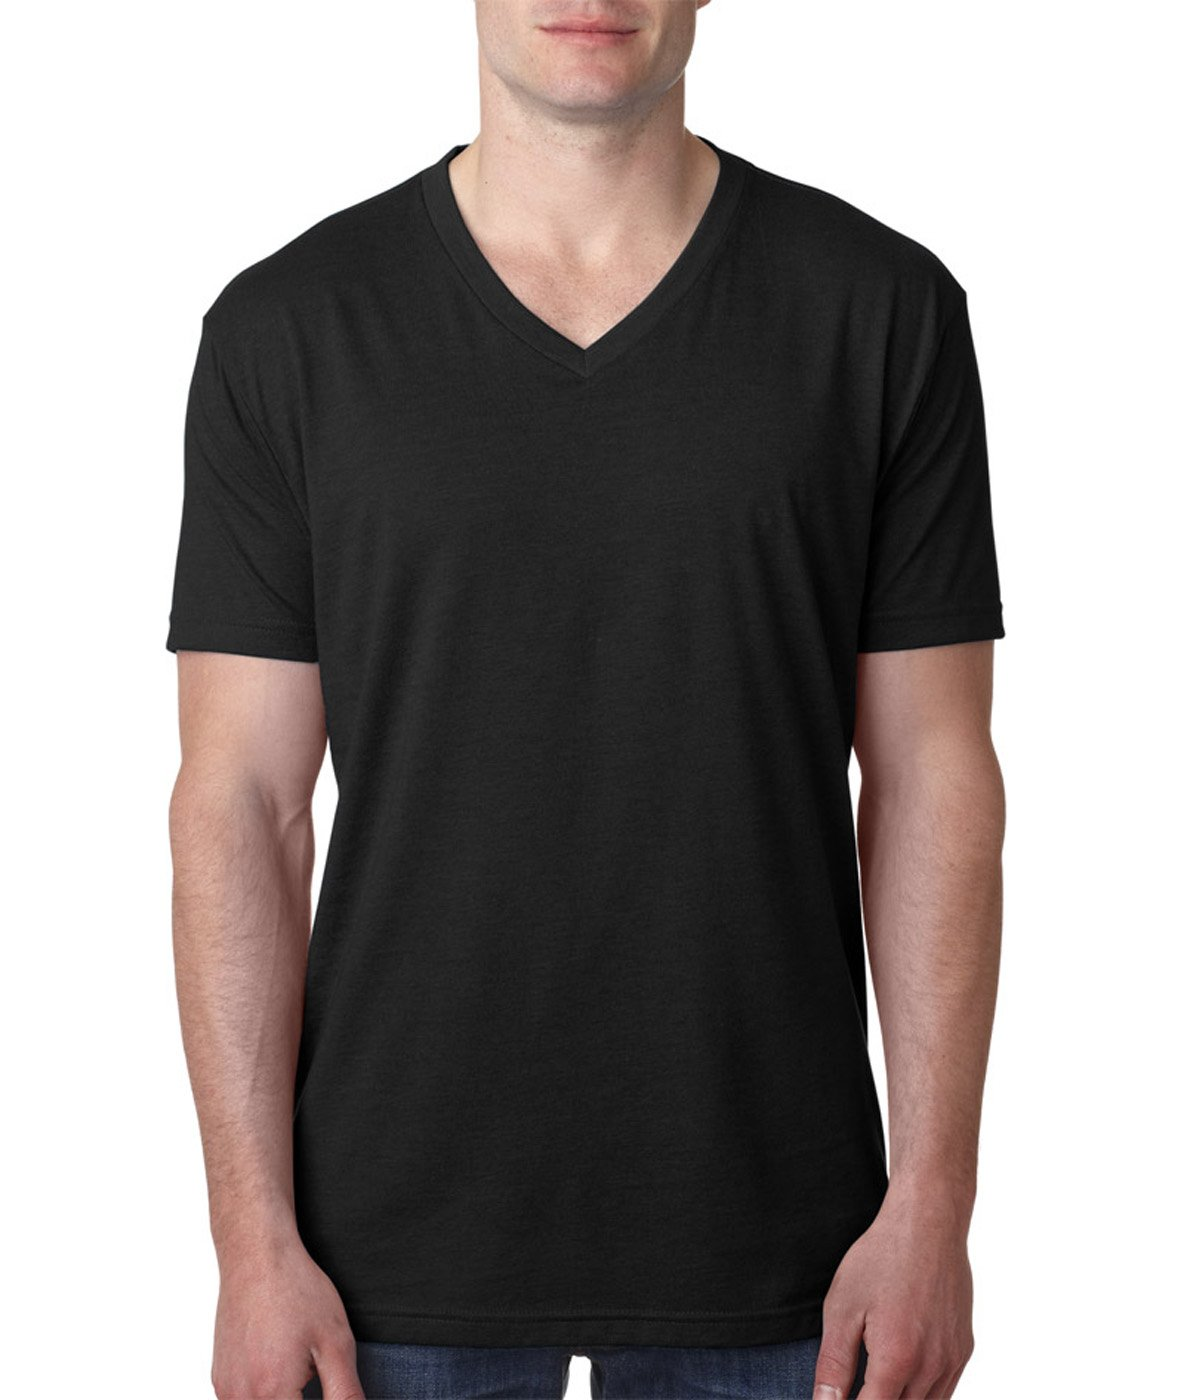 Next Level 6240 Premium CVC V-Neck Tee Black X-Large